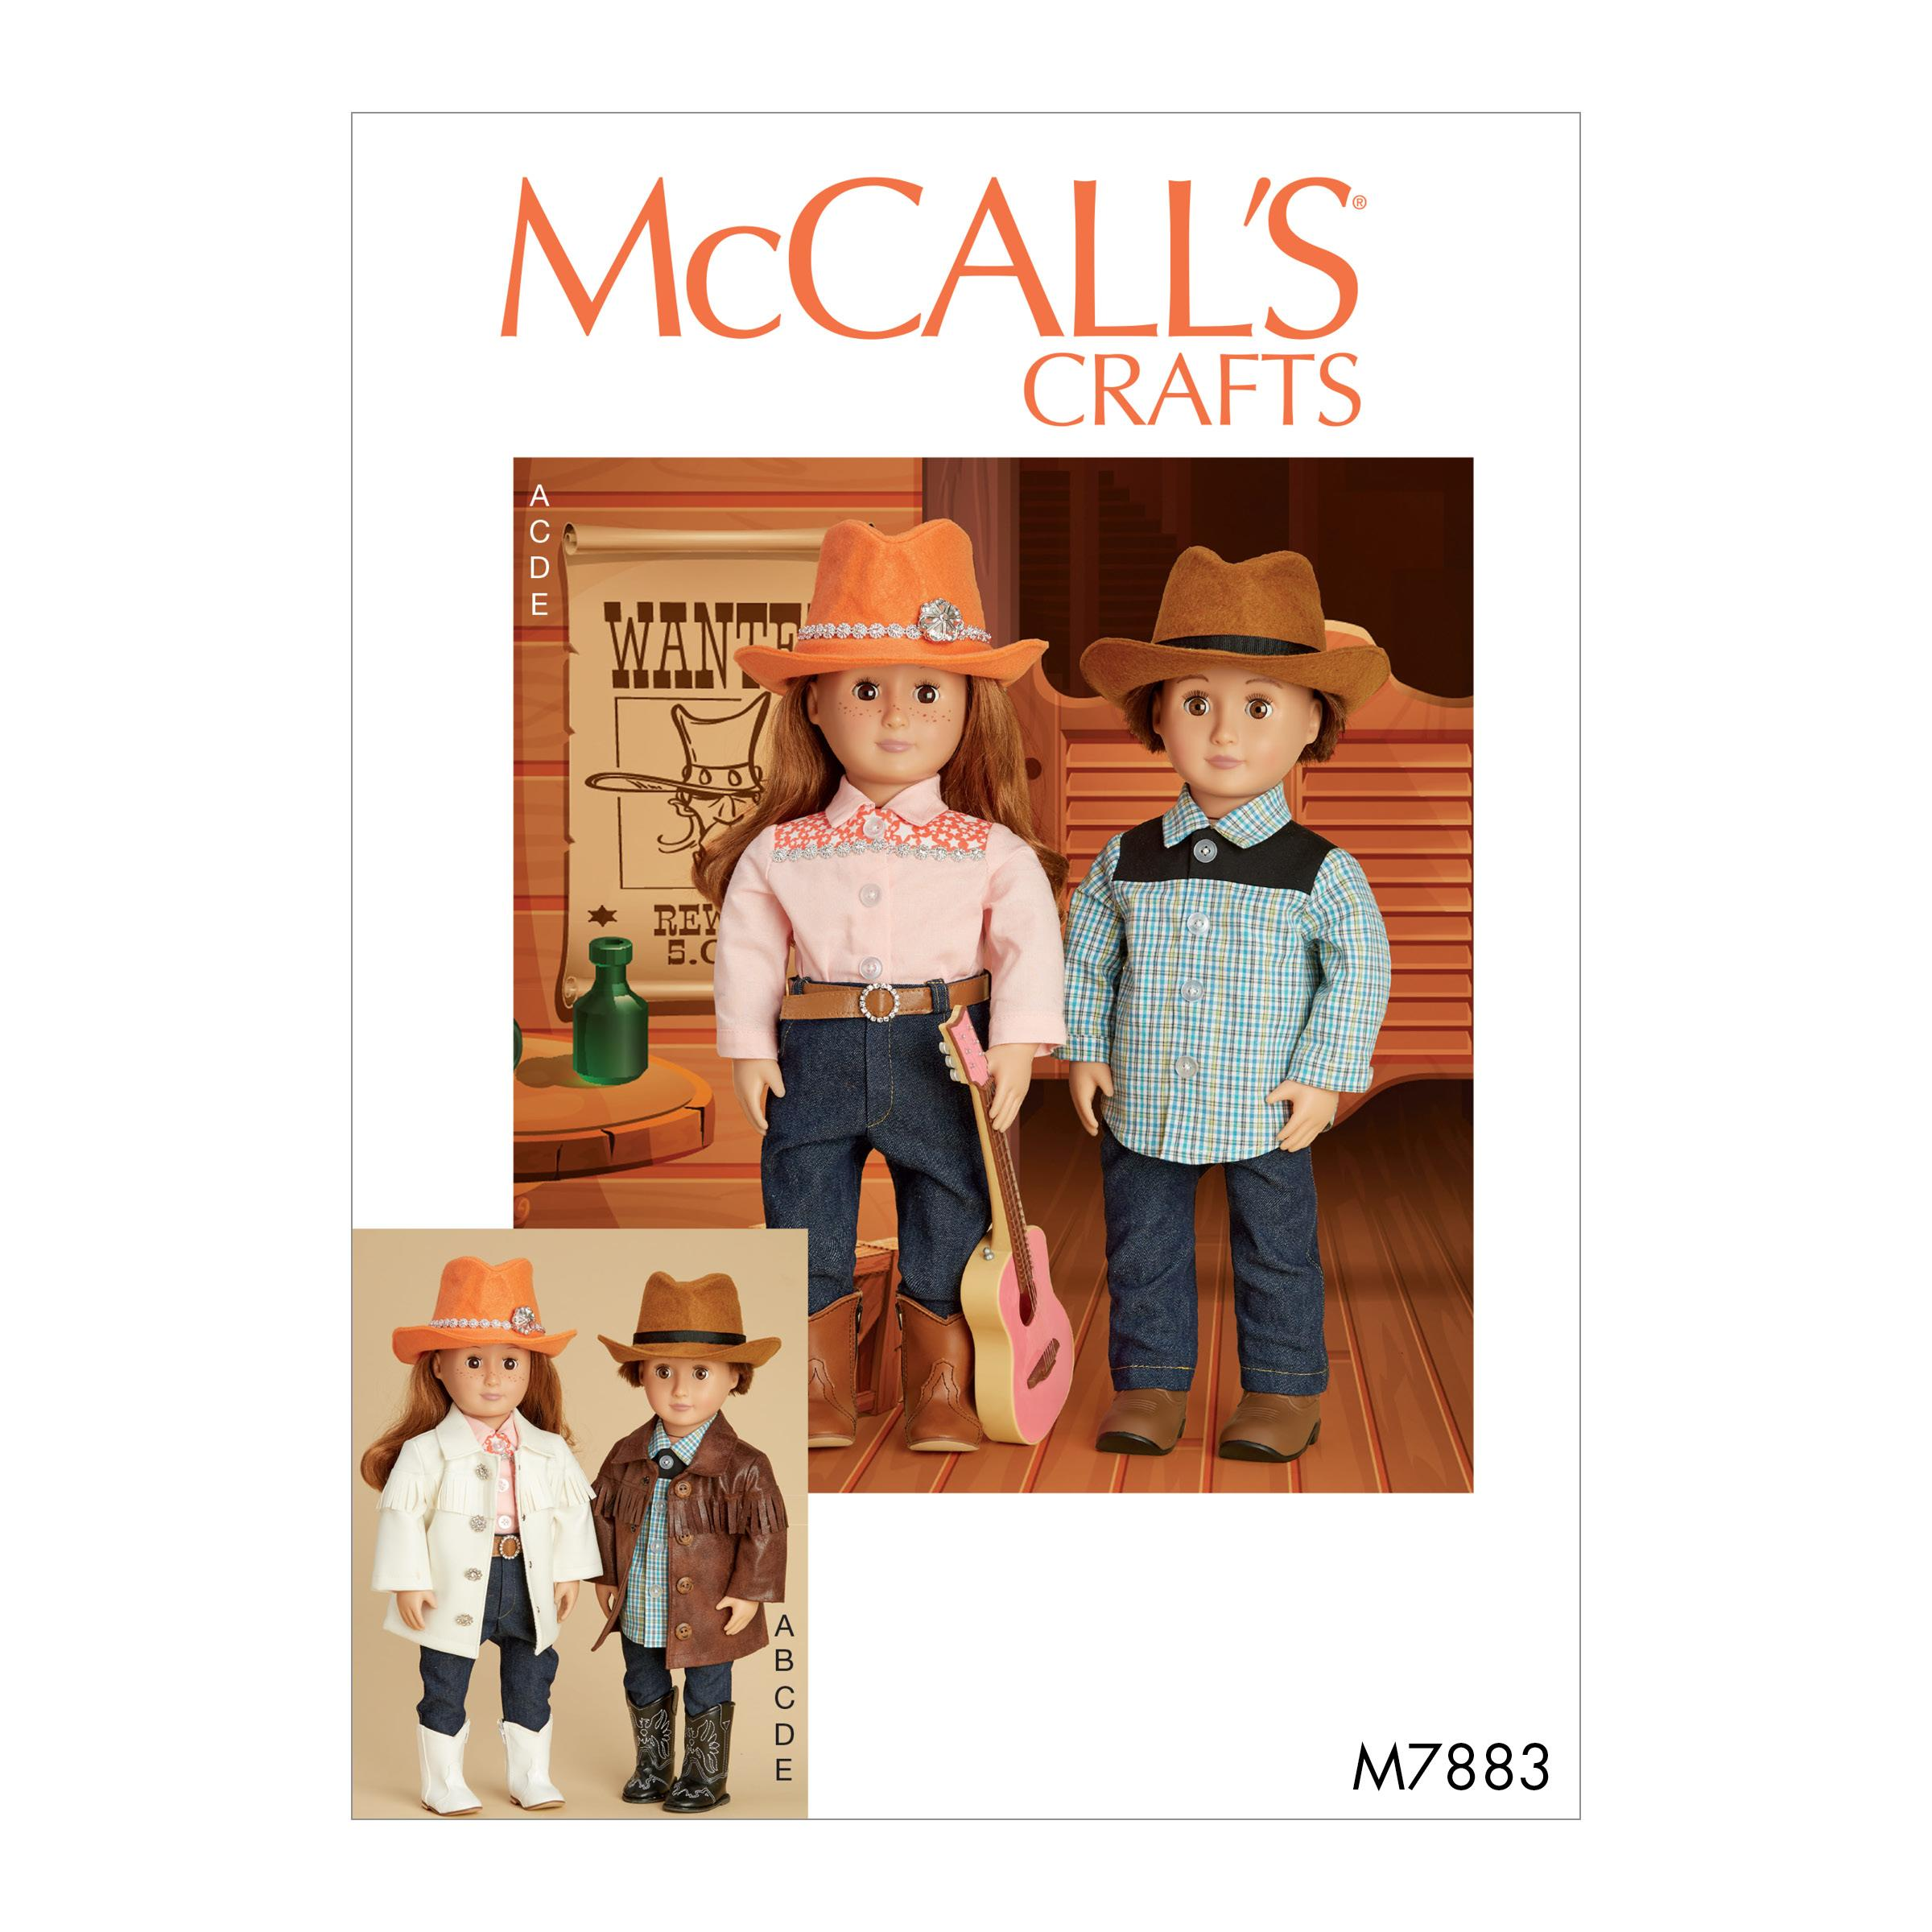 McCalls M7883 Crafts Dolls & Toys